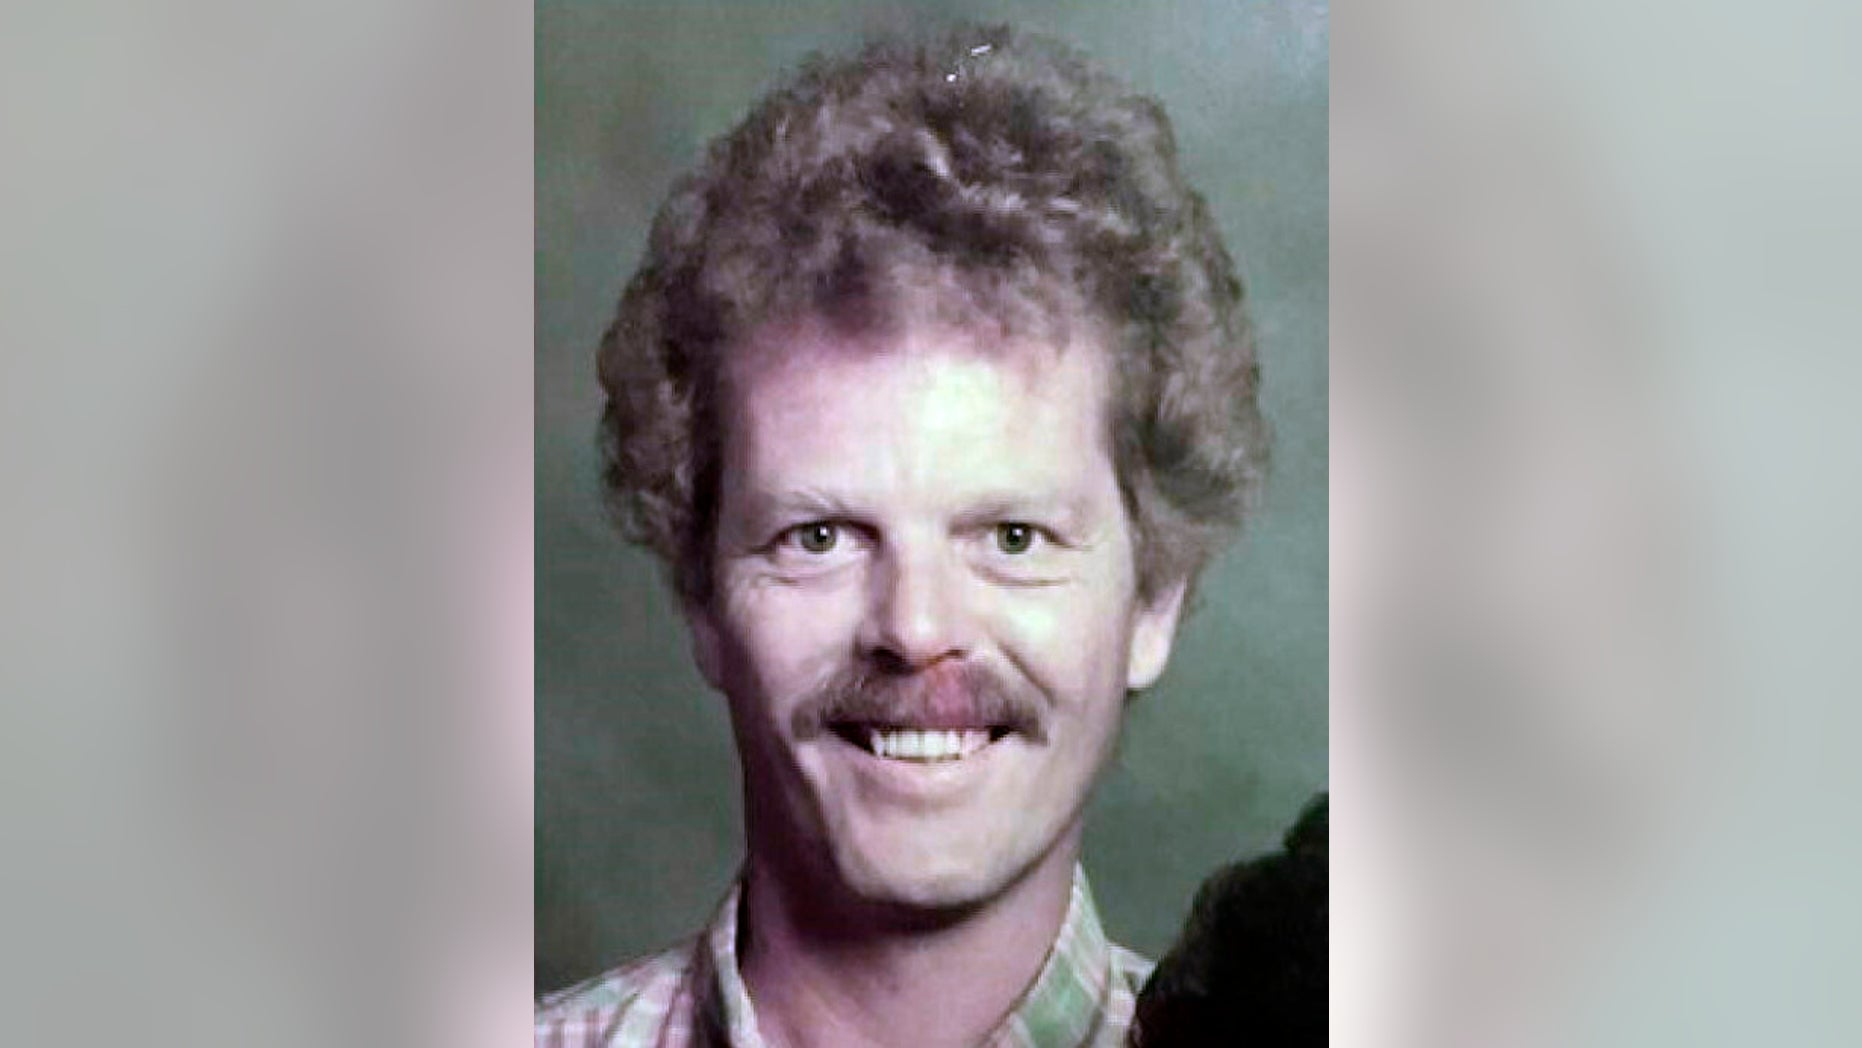 This undated photo provided by the Orange County District Attorney's Office shows James Neal. California authorities have released a decades-old photo of a suspect in the 1973 killing of an 11-year-old girl in the hopes of jogging the memory of any potential witnesses. Officials in Orange County said Thursday, Feb. 21, 2019 that the photo may depict what James Neal looked like around the time Linda O'Keefe was killed. James Neal, a  Colorado man arrested after DNA tied him to the 1973 killing of an 11-year-old California girl has yet to decide if he will fight extradition. (Orange County District Attorney's Office via AP)